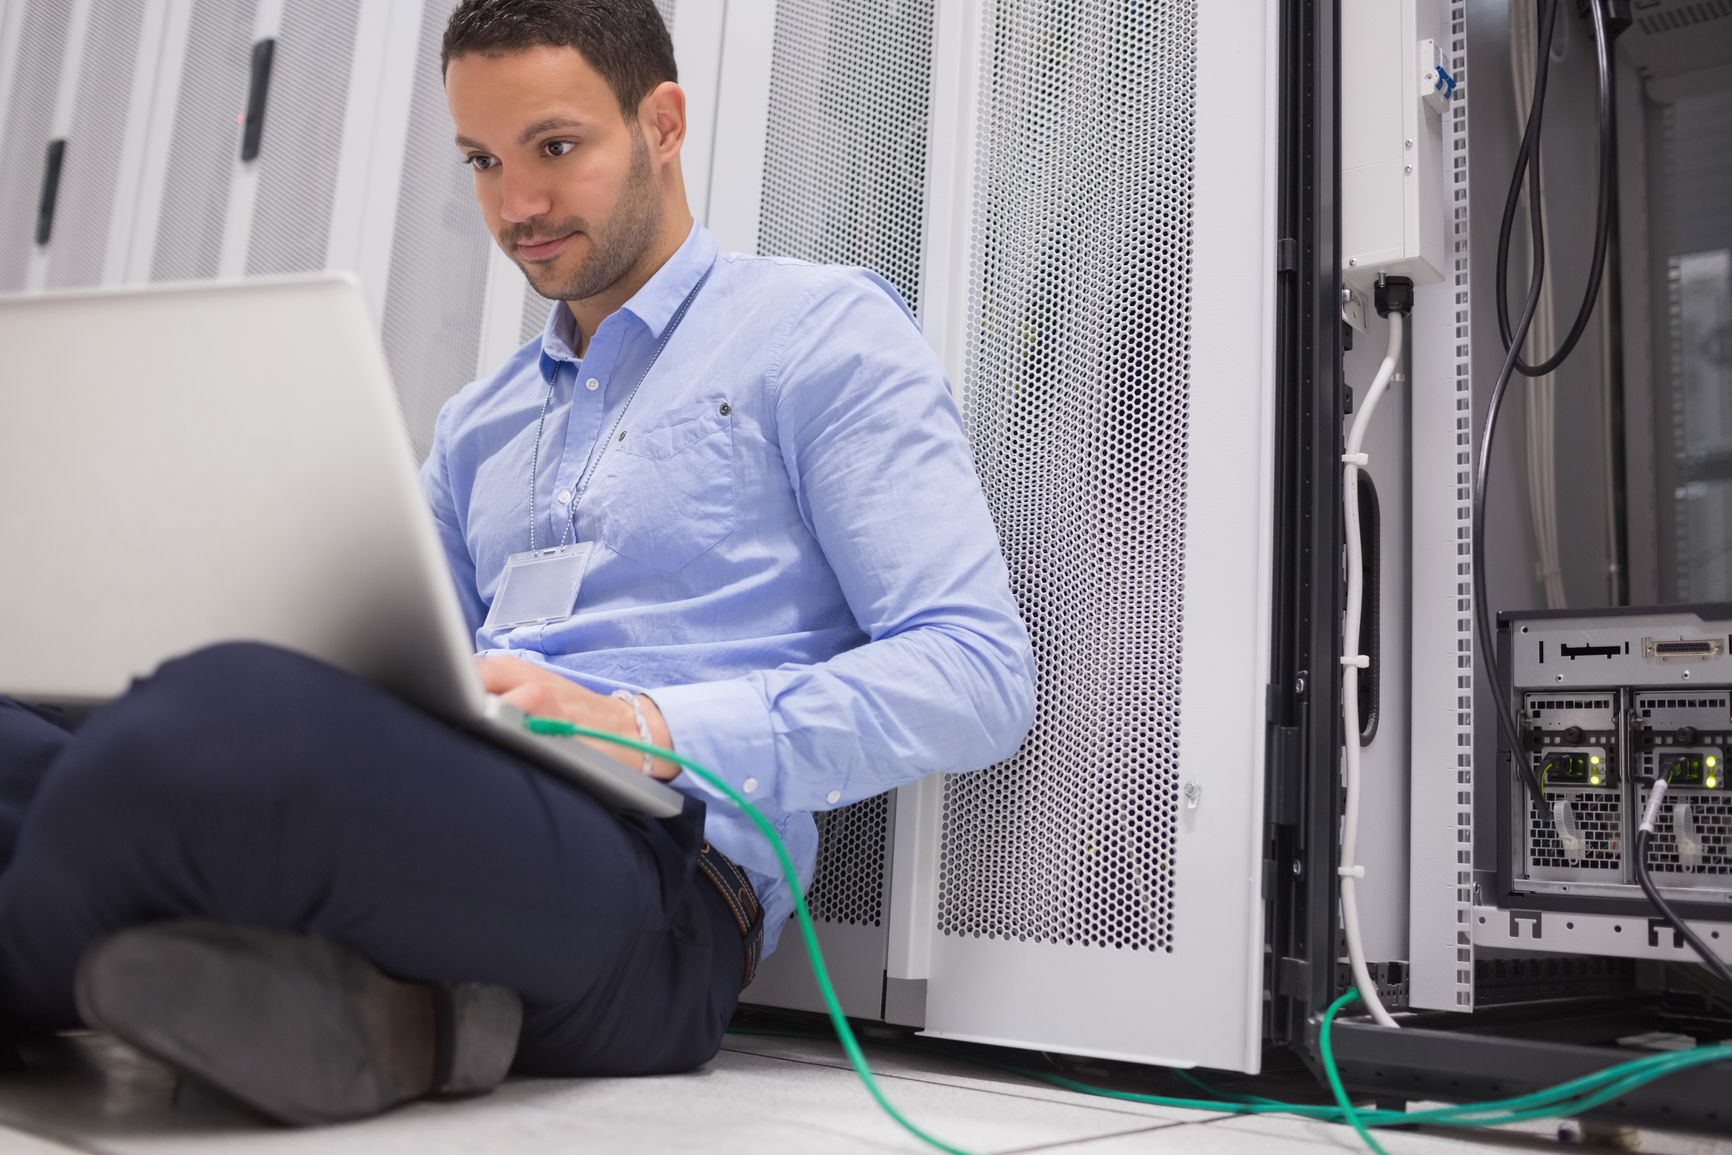 Man concentrating on laptop connected to server in data center